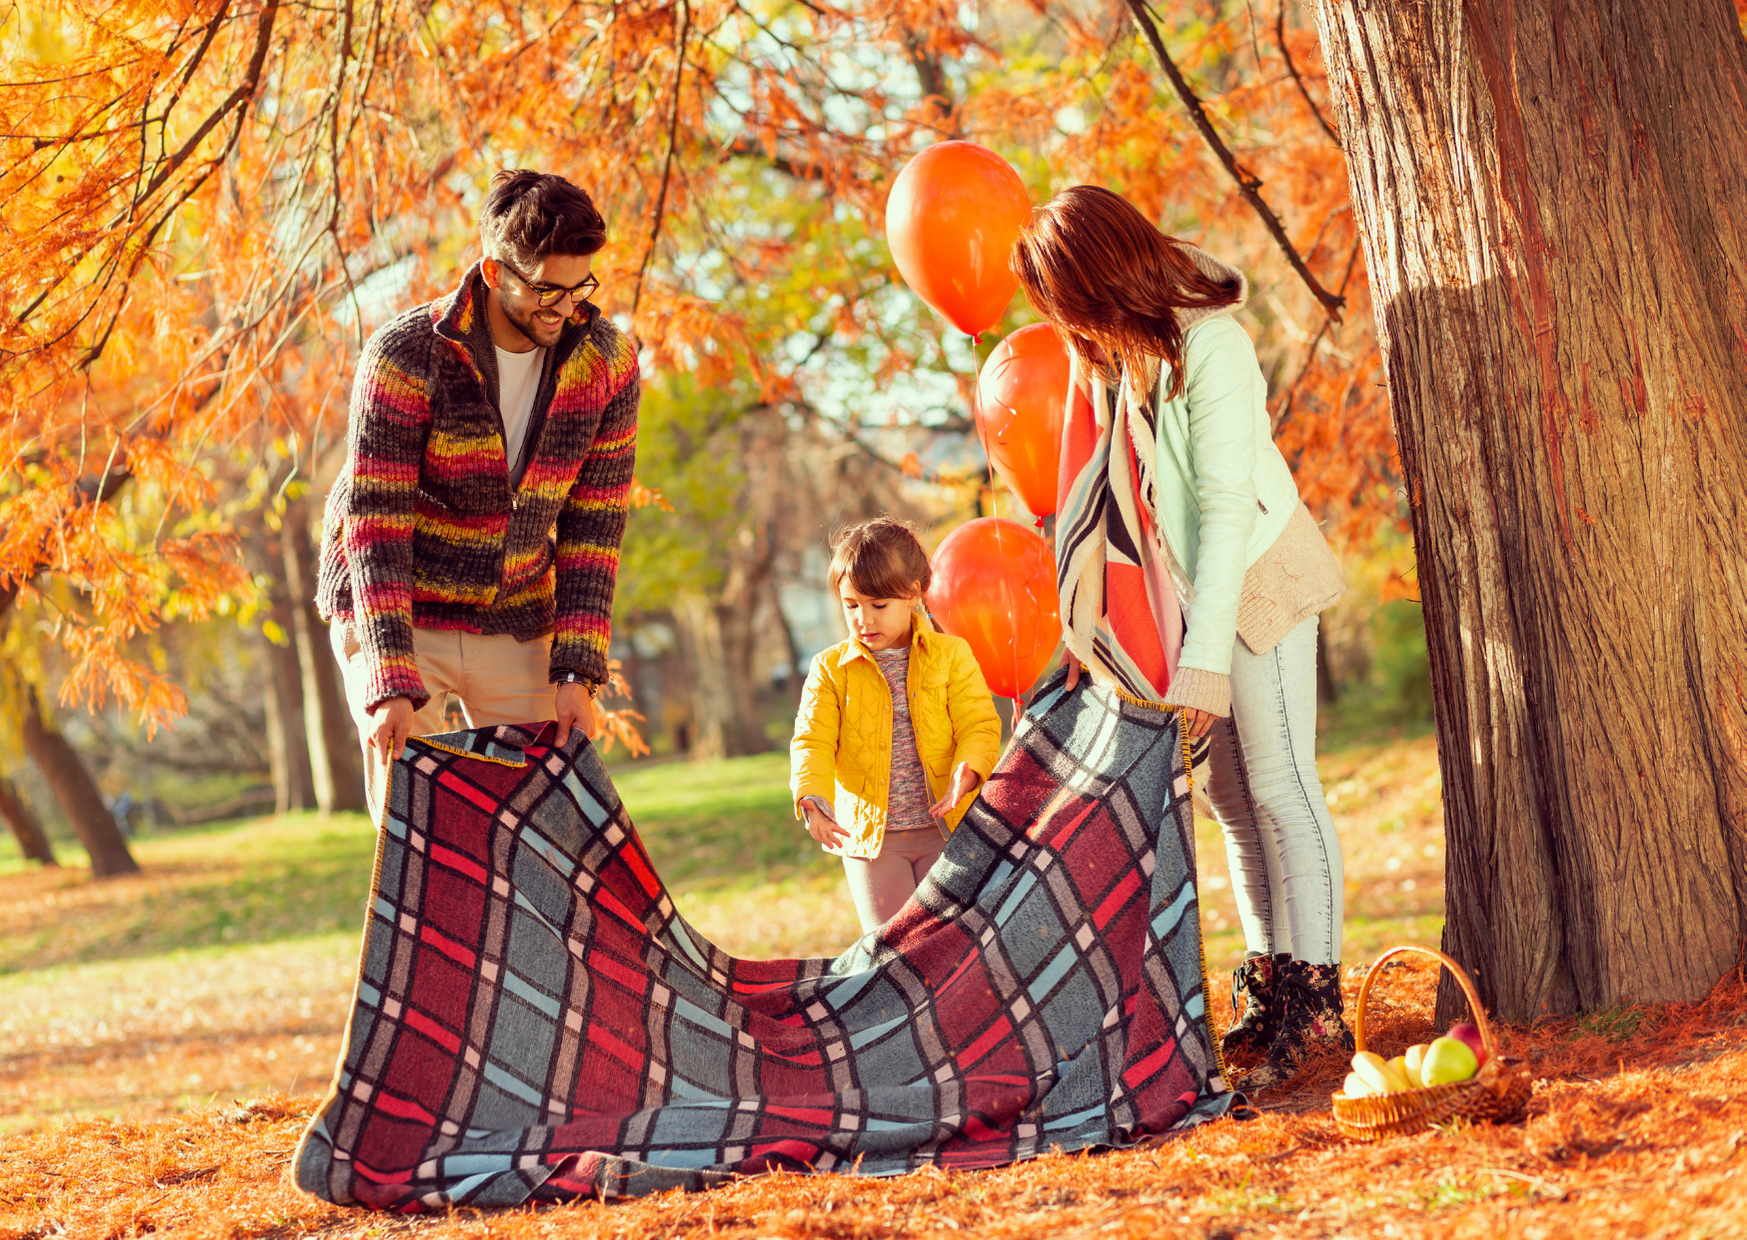 a family of three having a picnic under the tree